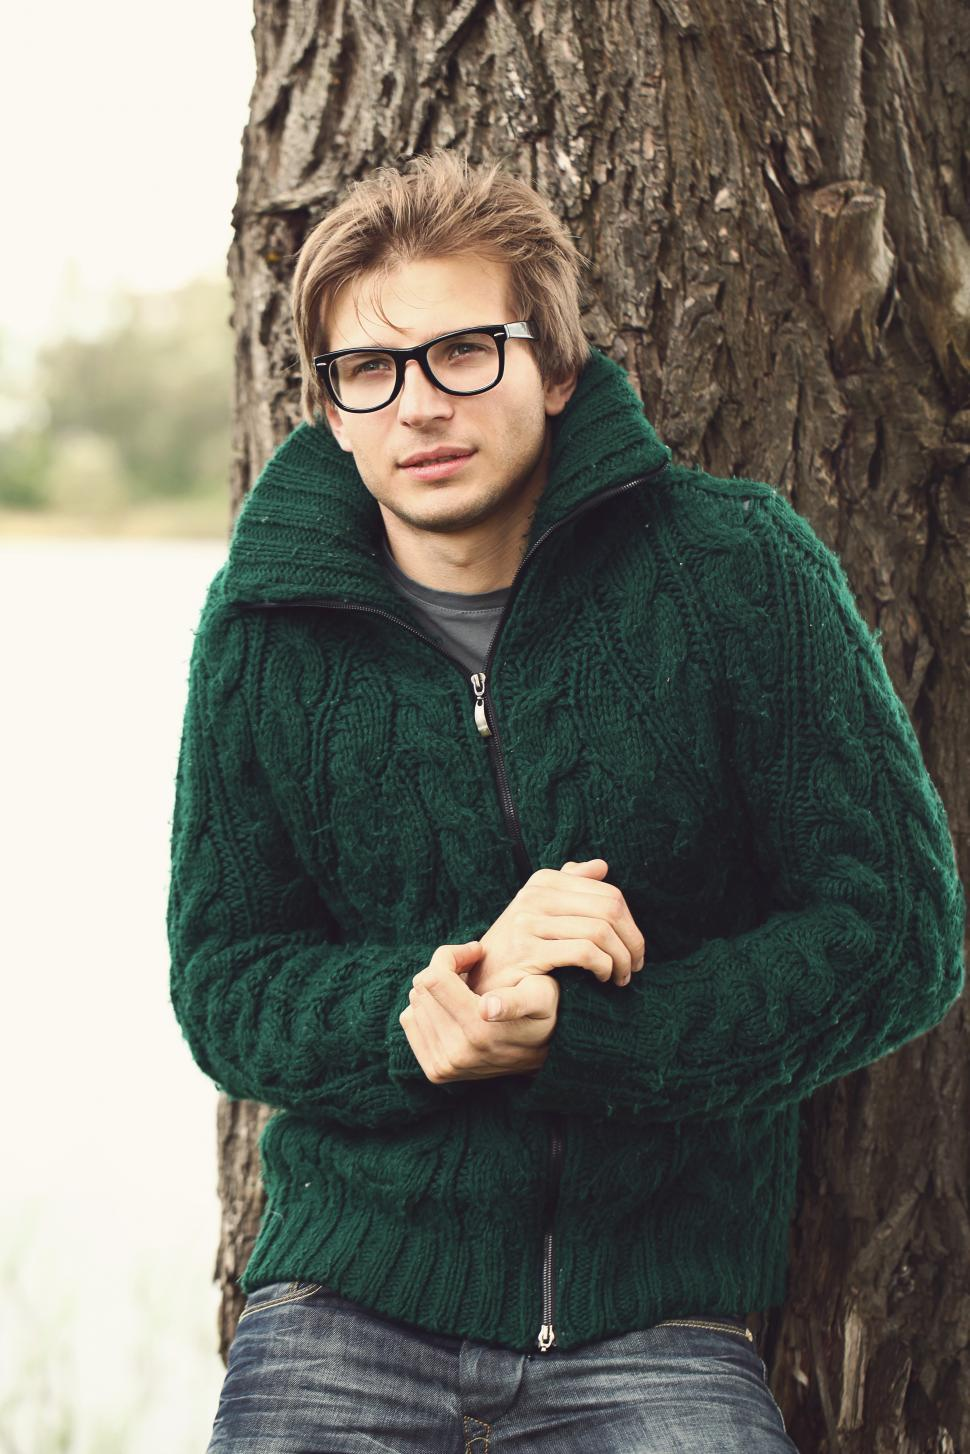 Download Free Stock Photo of Man in sweater outdoors against tree